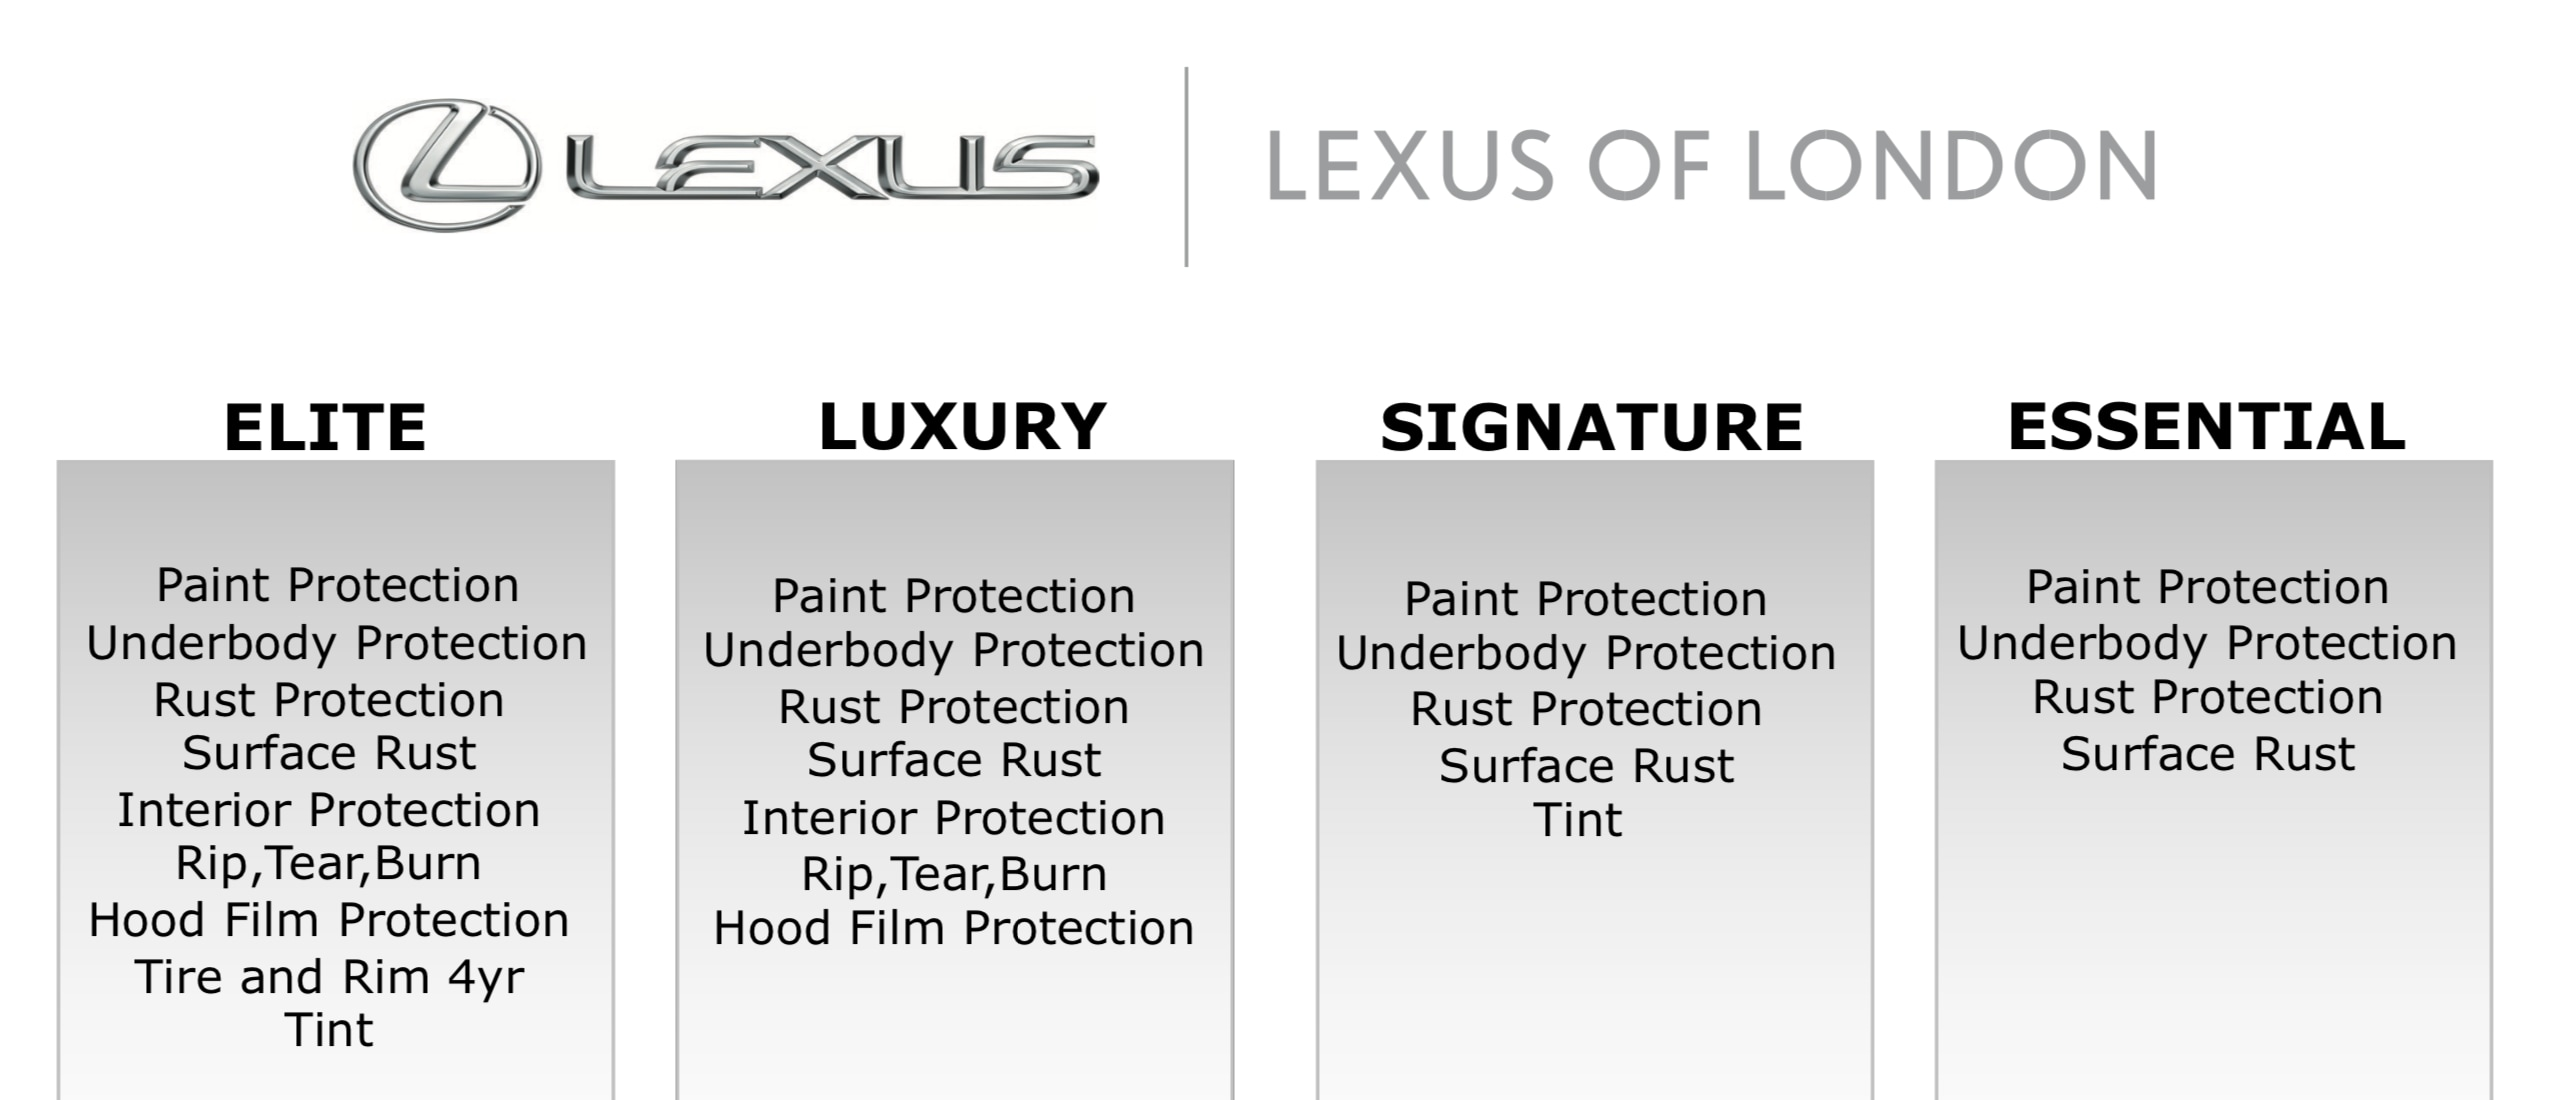 Personalized Protection Packages   LEXUS OF LONDON